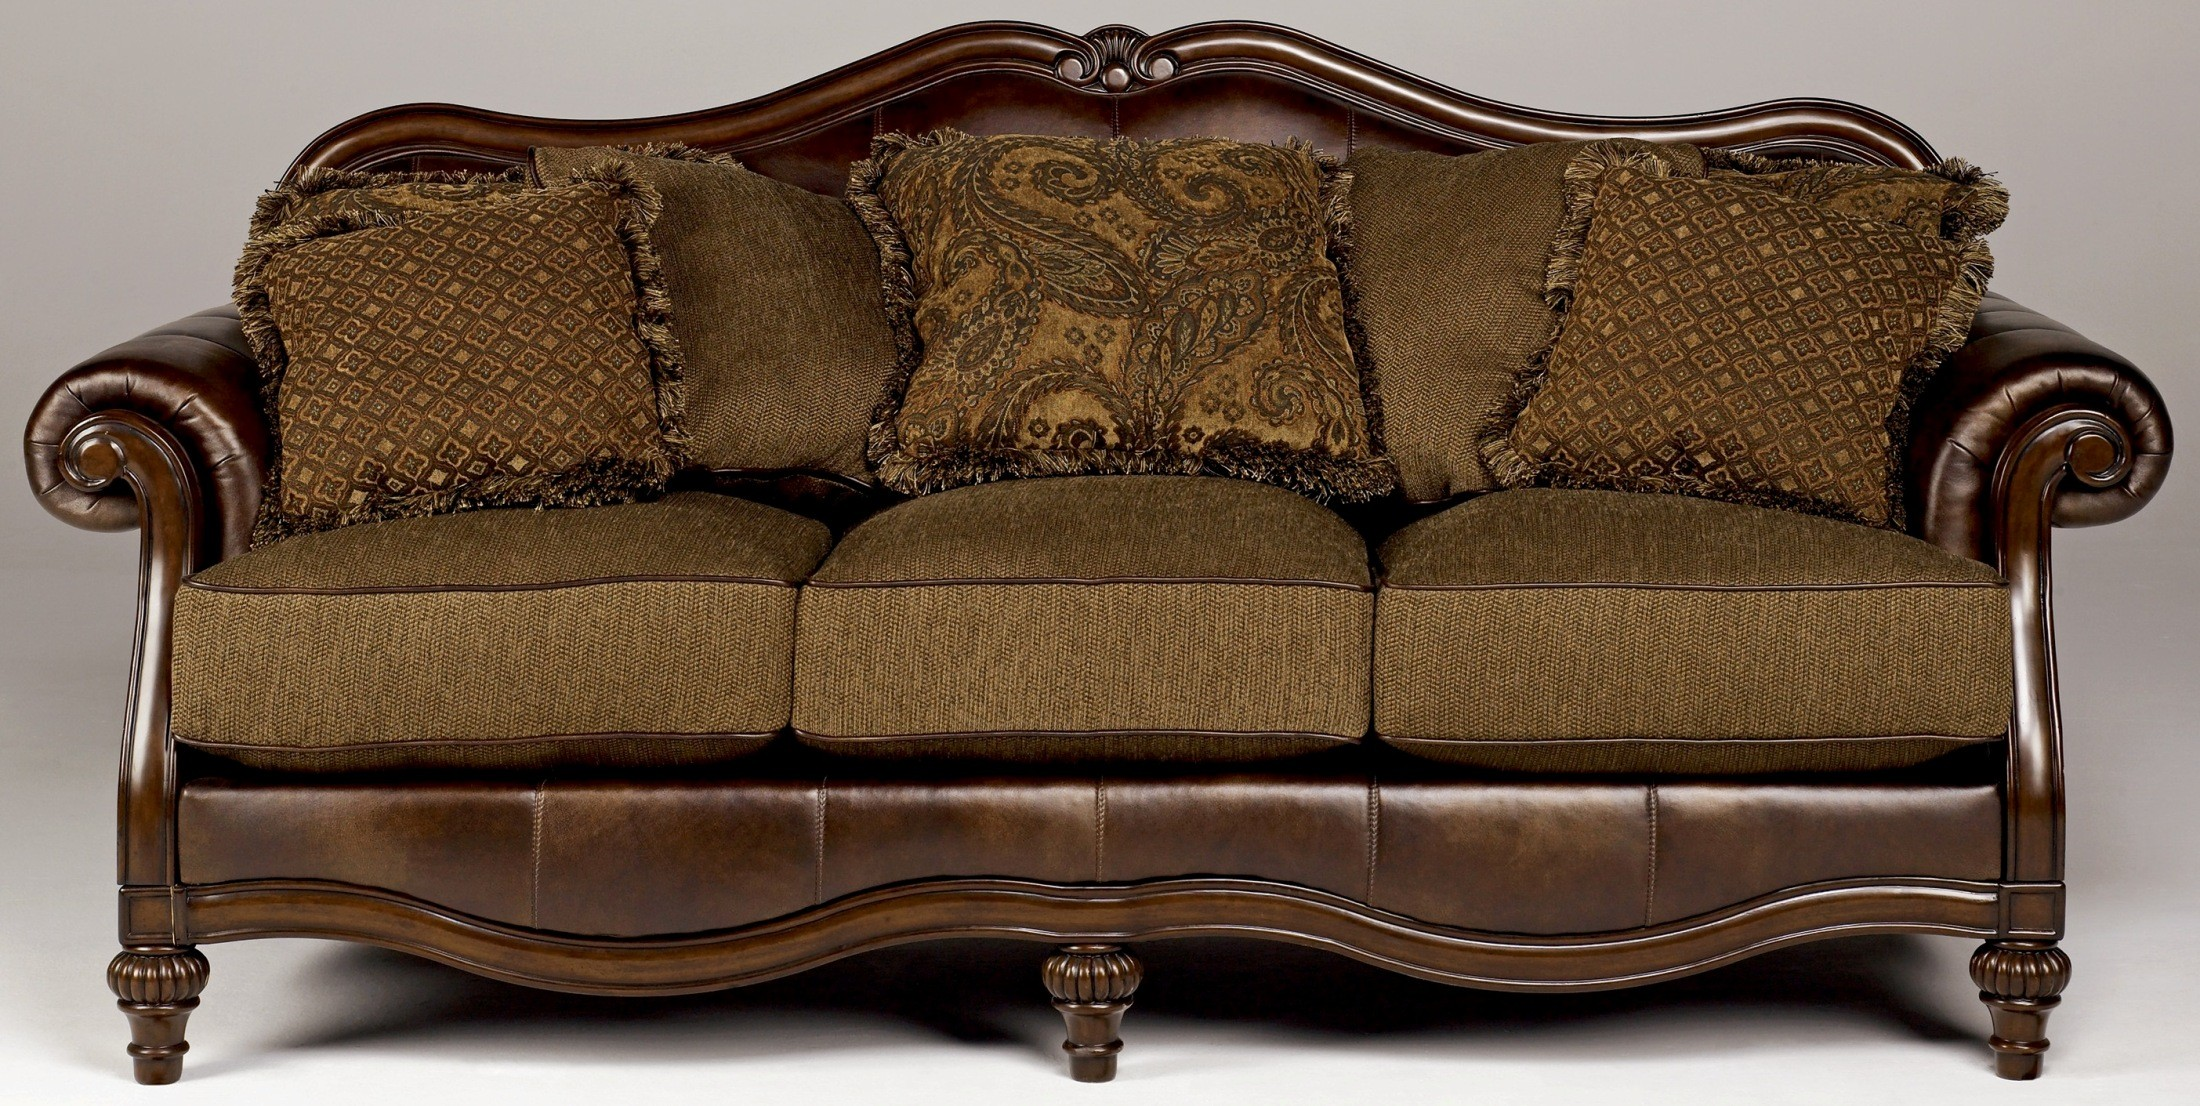 Claremore Antique Sofa Chair Living Room Set From Ashley Coleman Furniture